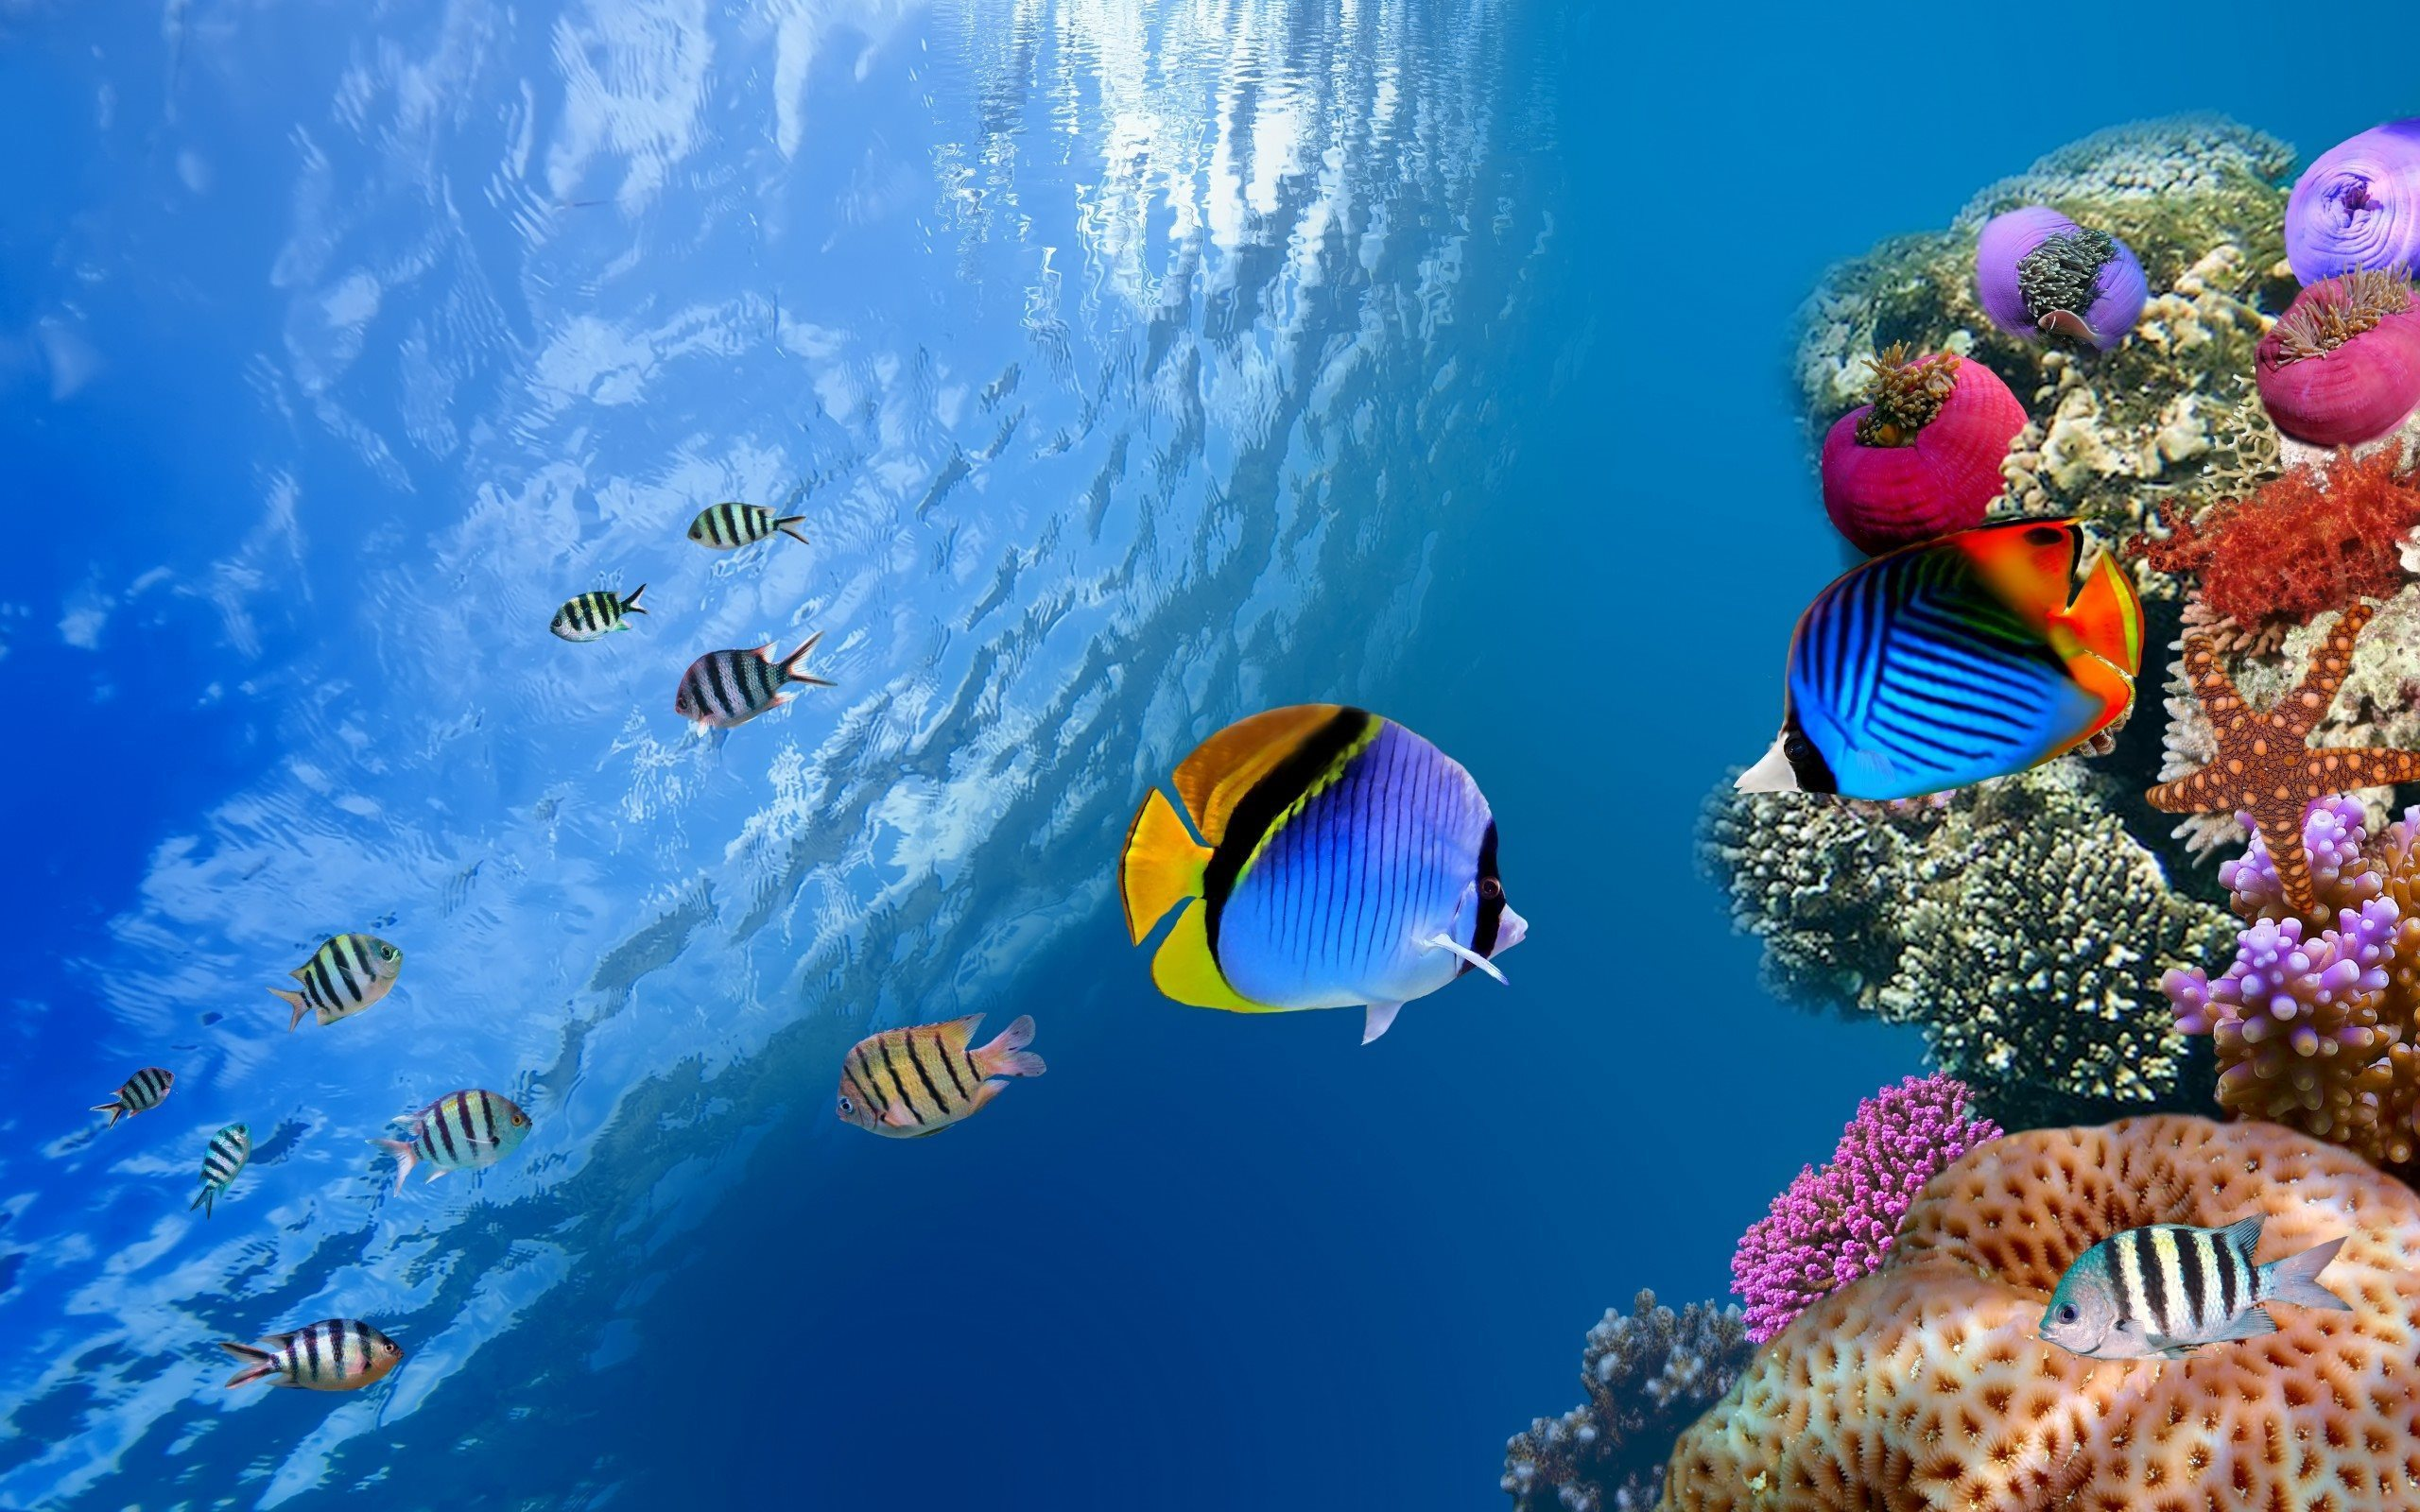 under the sea wallpapers - photo #21